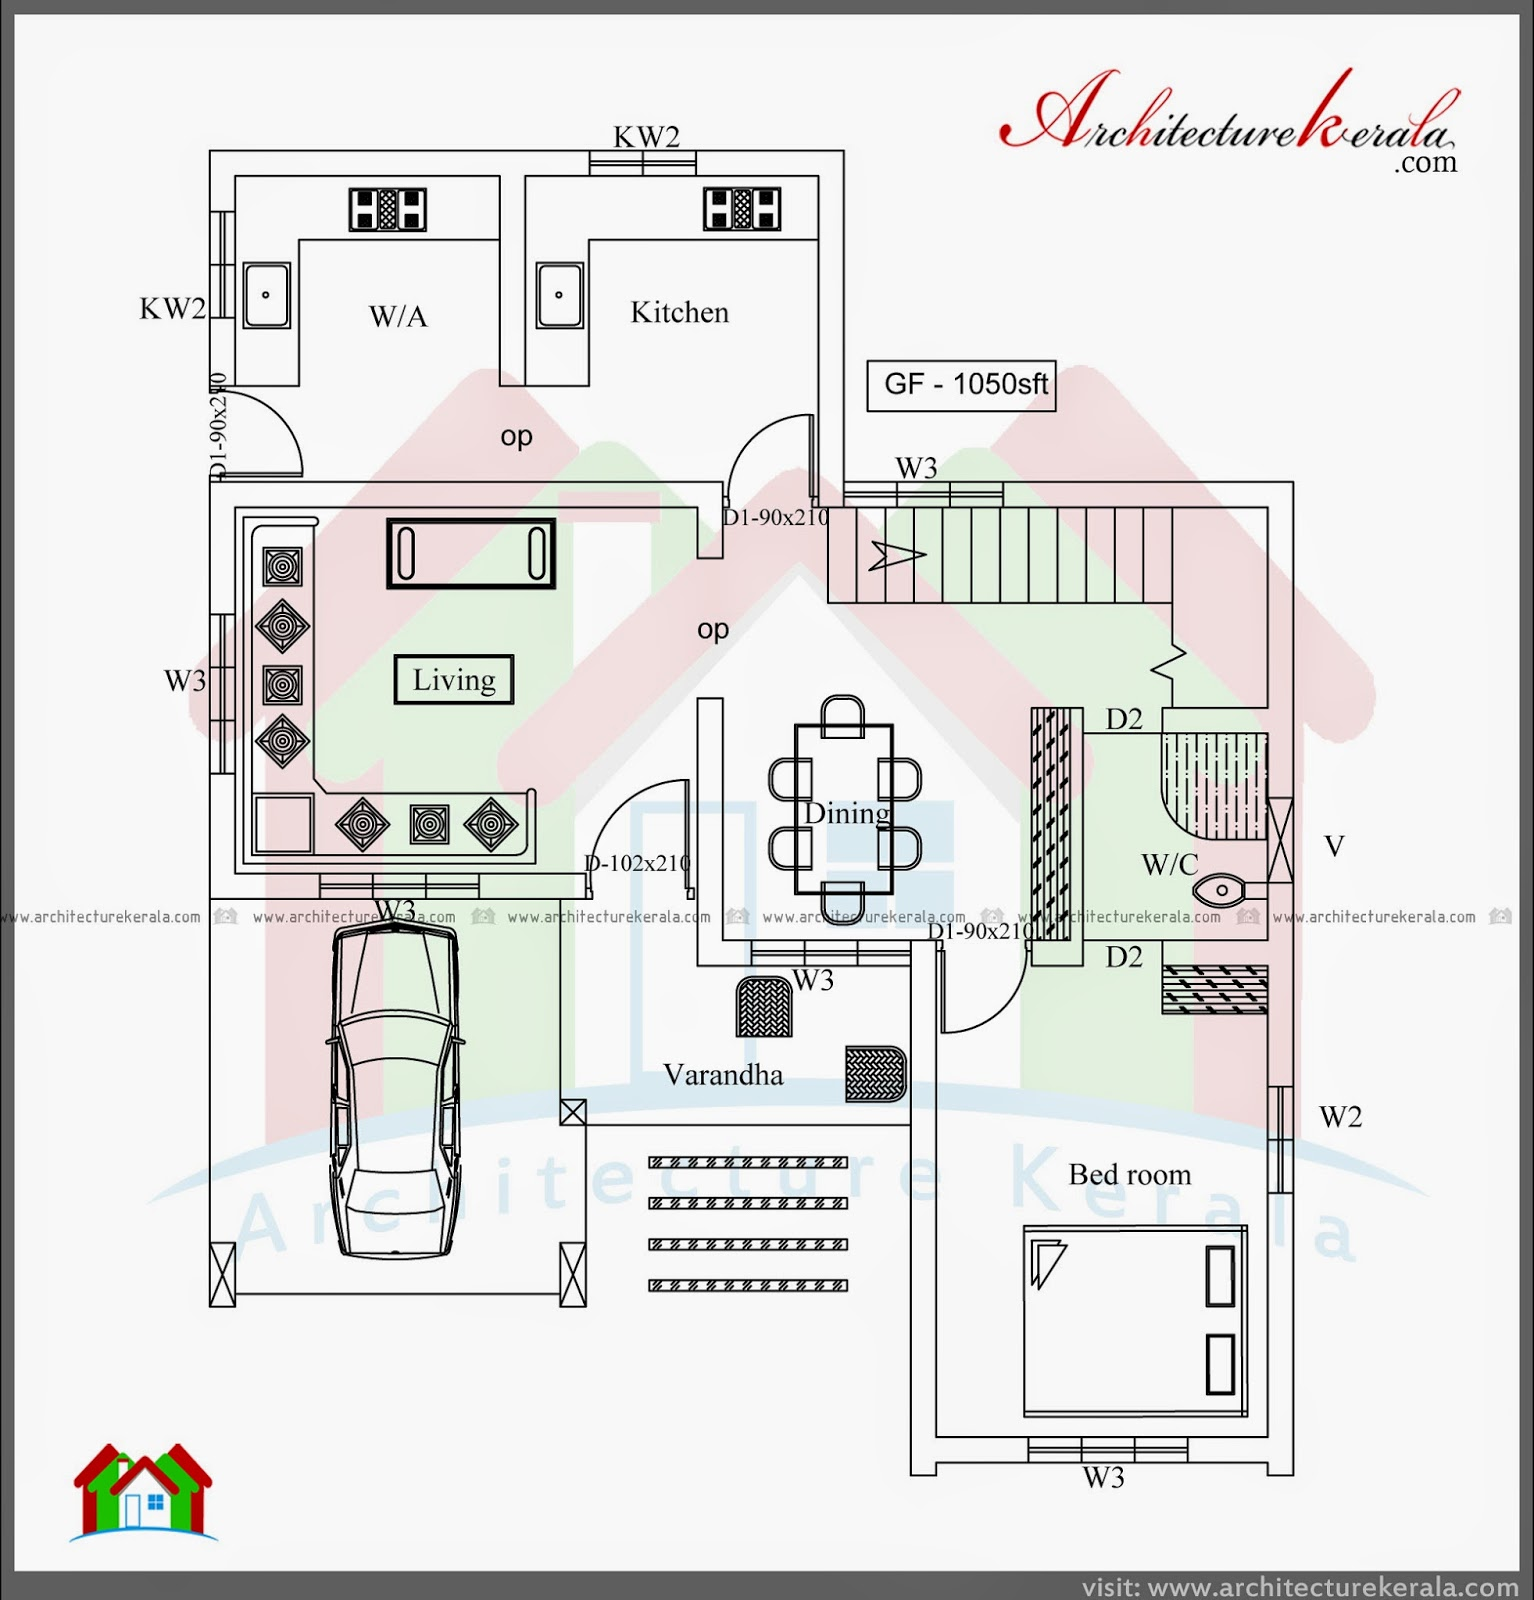 4 Bedroom Kerala House Plans House Plans In Kerala With 4 Bedrooms House  Decor  4. 4 Bedroom 2 Story House Plans Kerala Style   WSIProfiTeam com